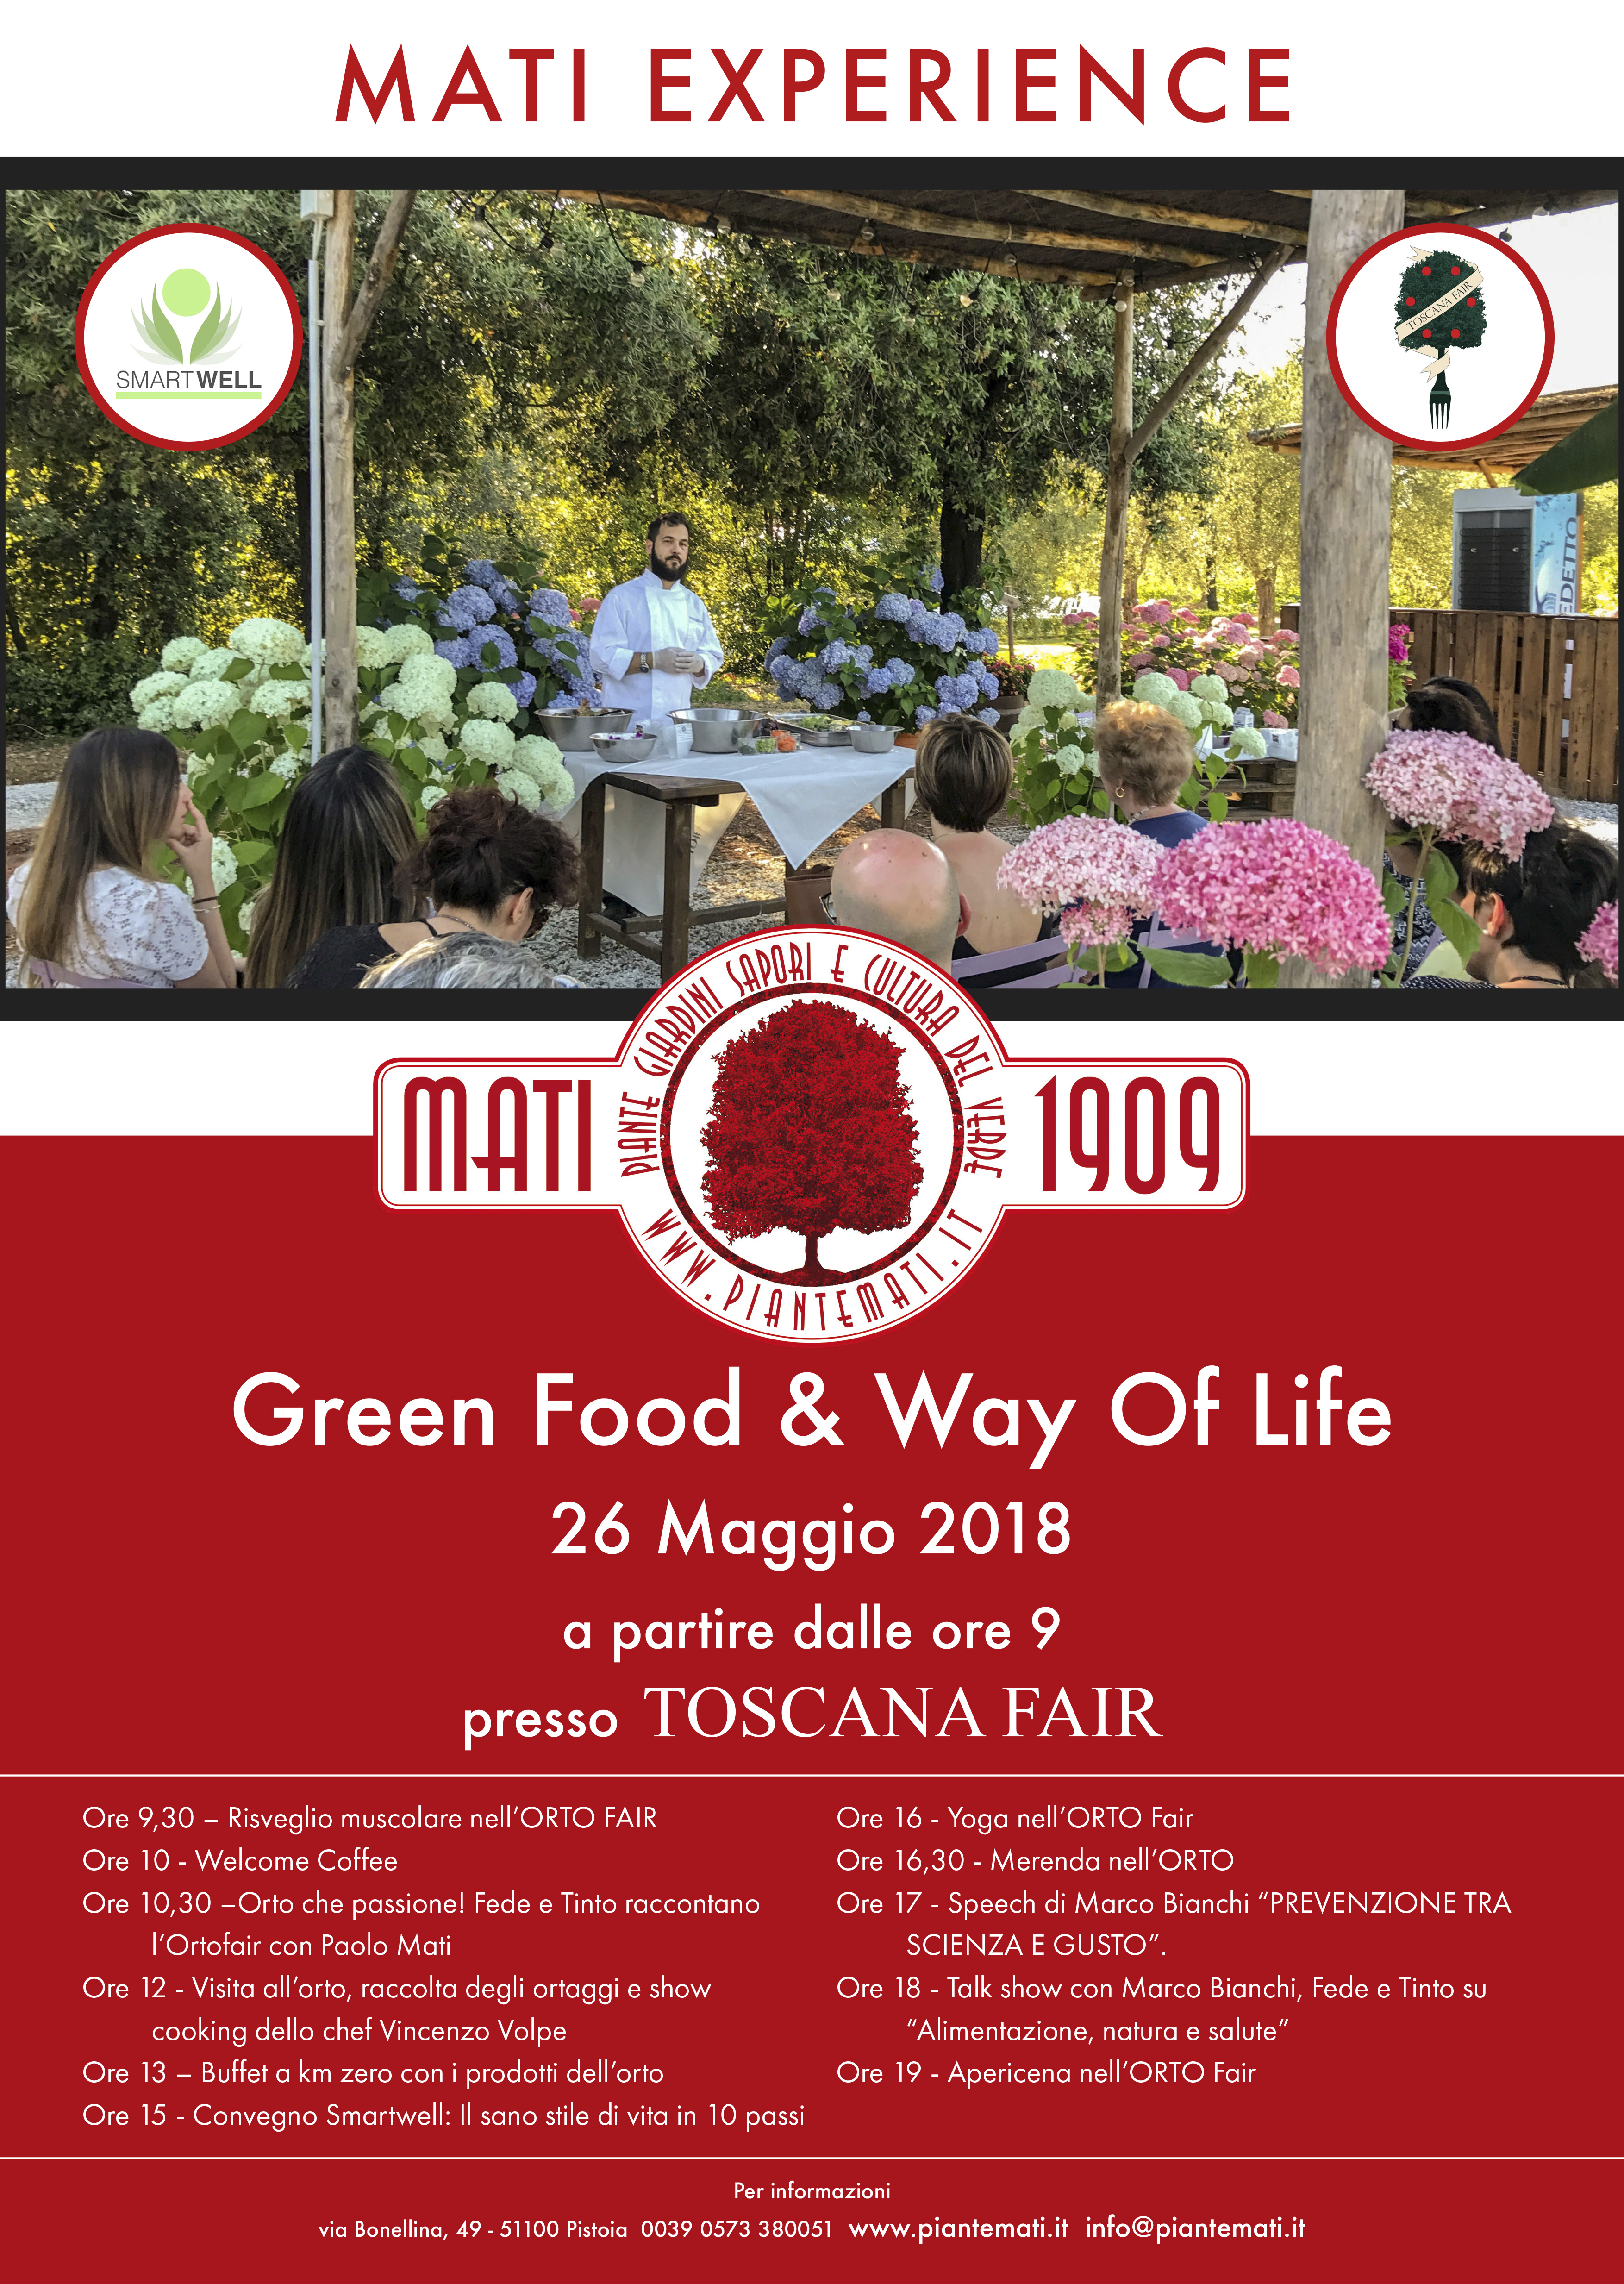 Green Food & Way Of Life